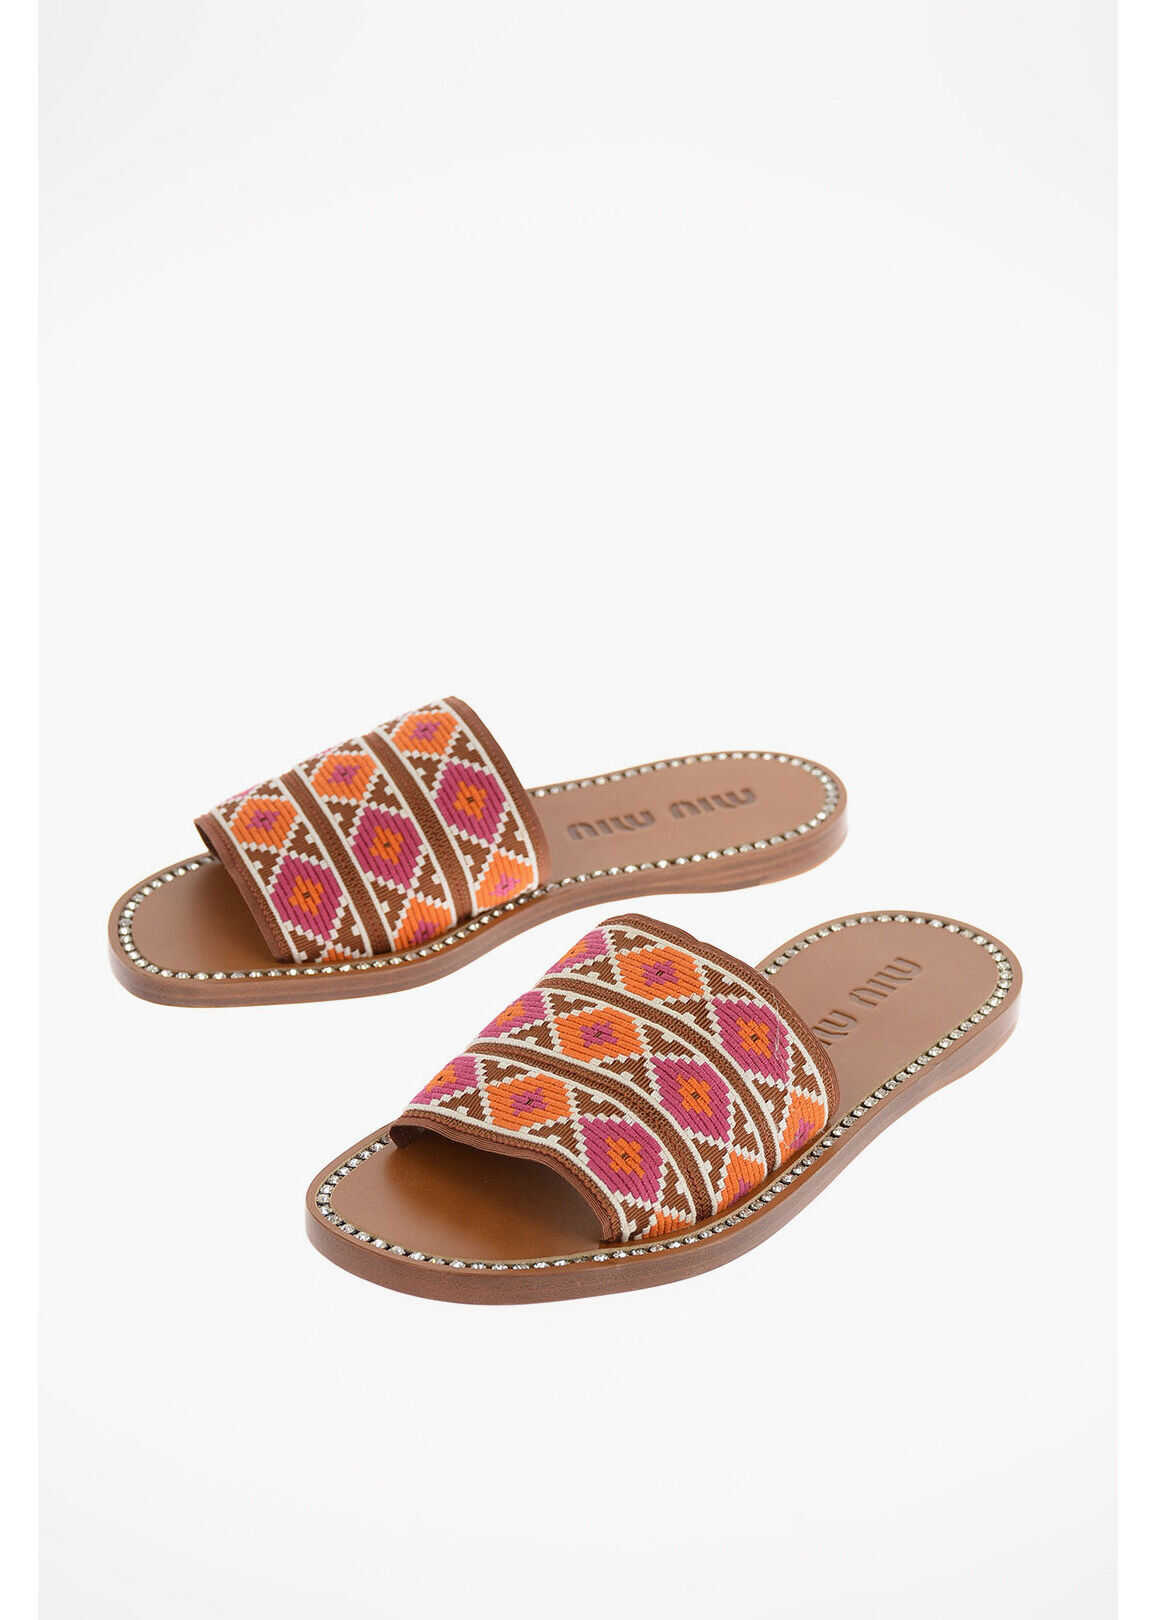 Miu Miu Leather and Embroidered Canvas Slides with Jewel Trimmings BROWN imagine b-mall.ro